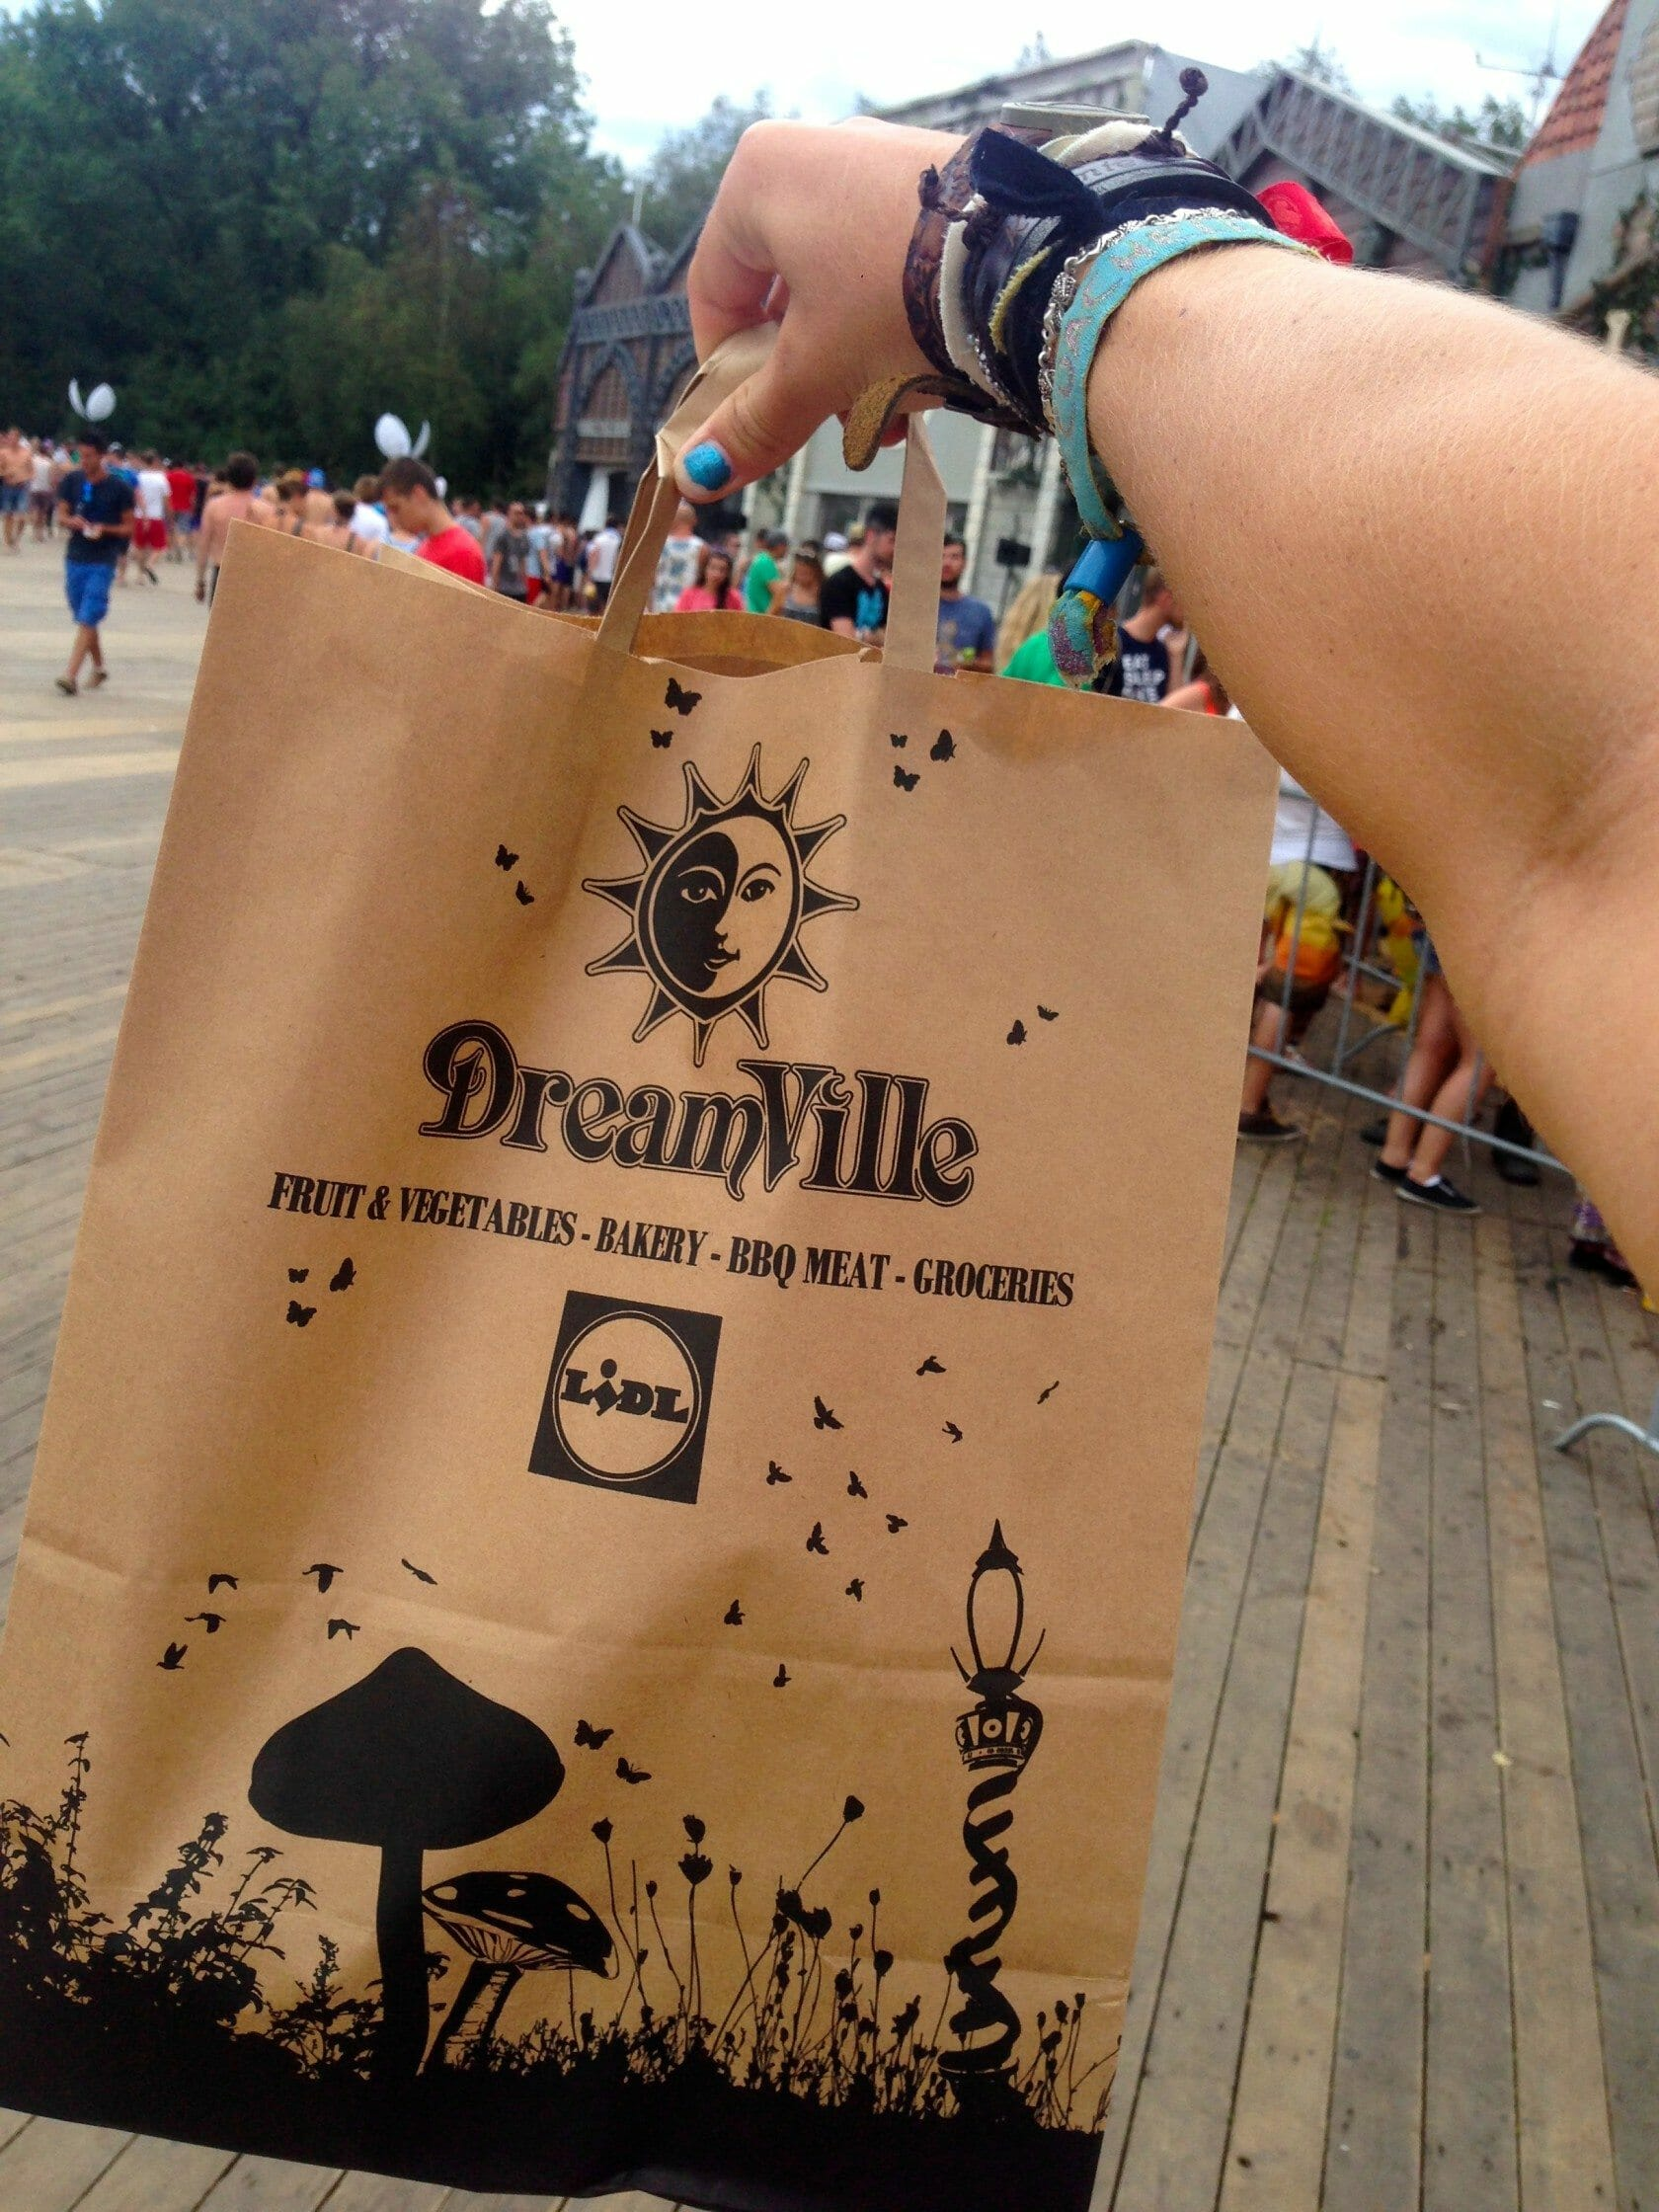 Tomorrowland Dreamville camping